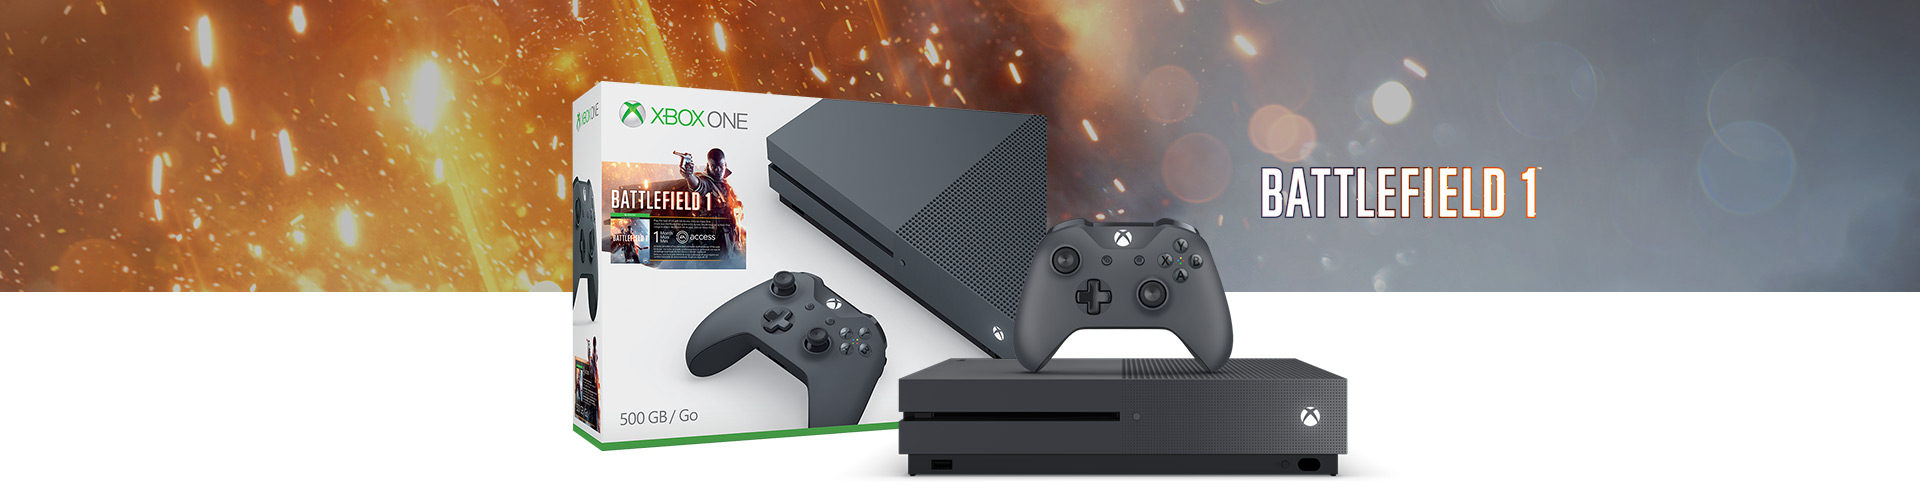 how to connect my xbox one to my ea account